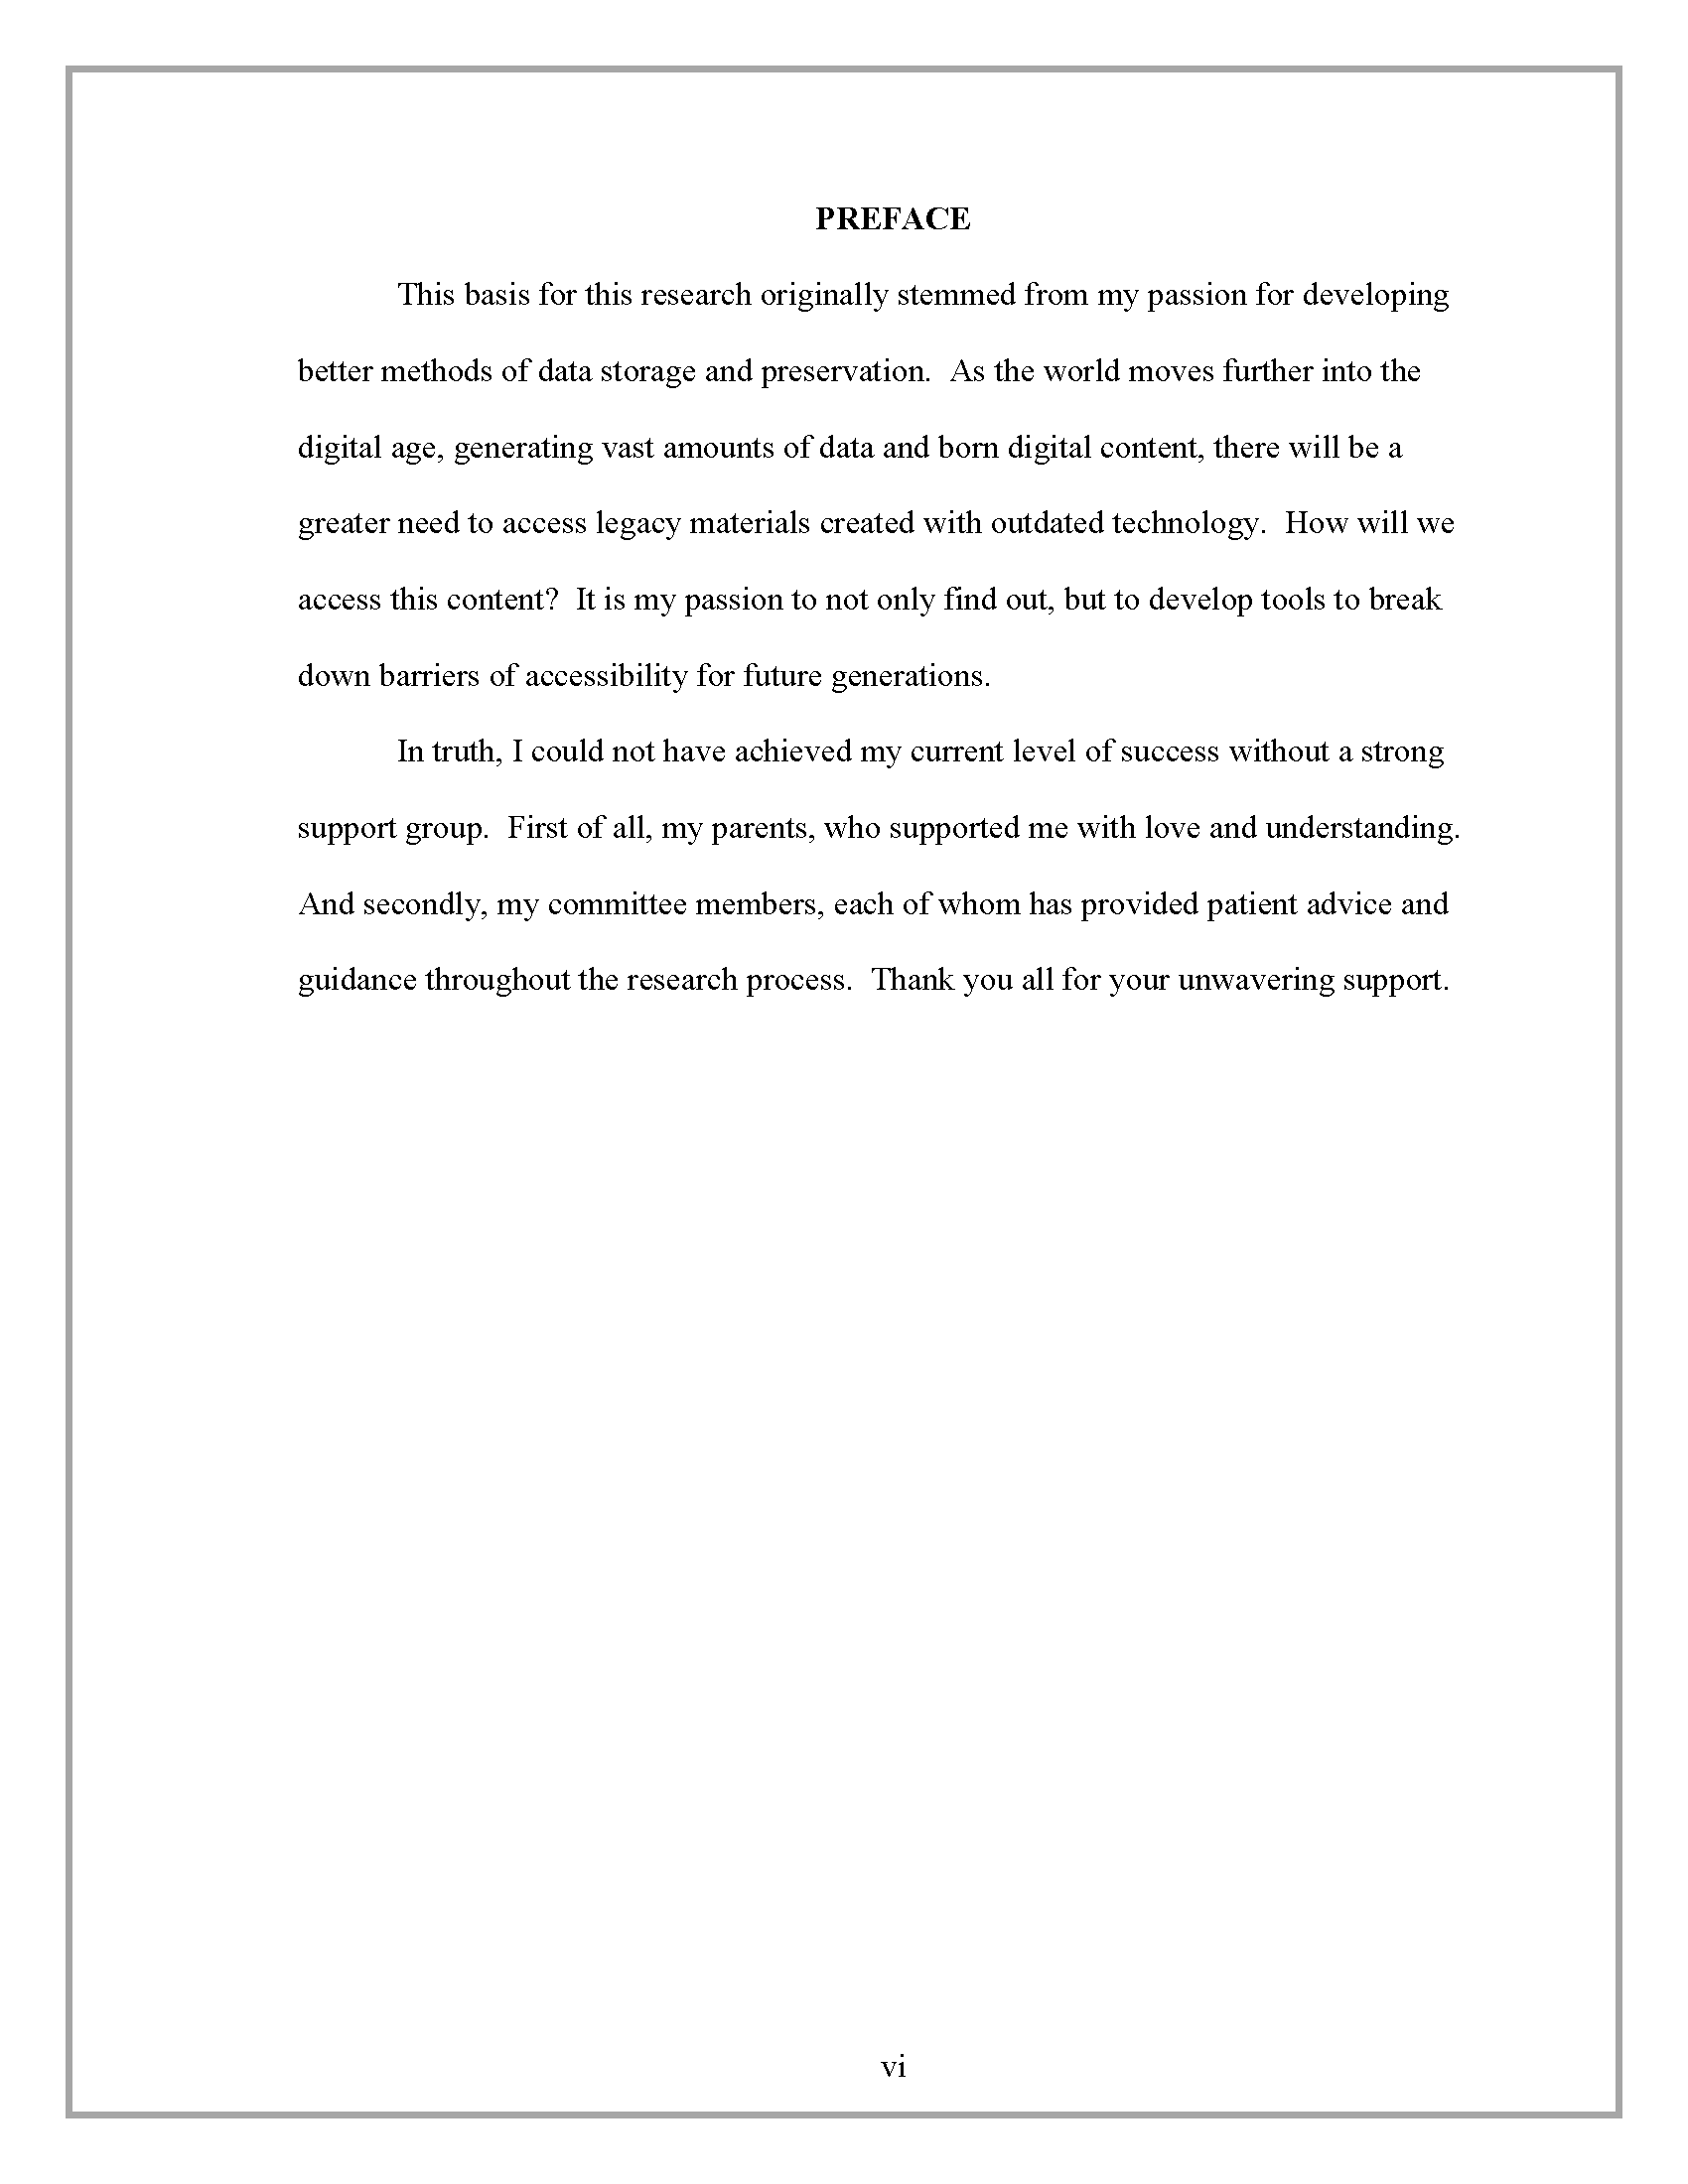 018 Thesis For Research Paper Preface Border Wonderful A Statement Generator Career On Schizophrenia Full